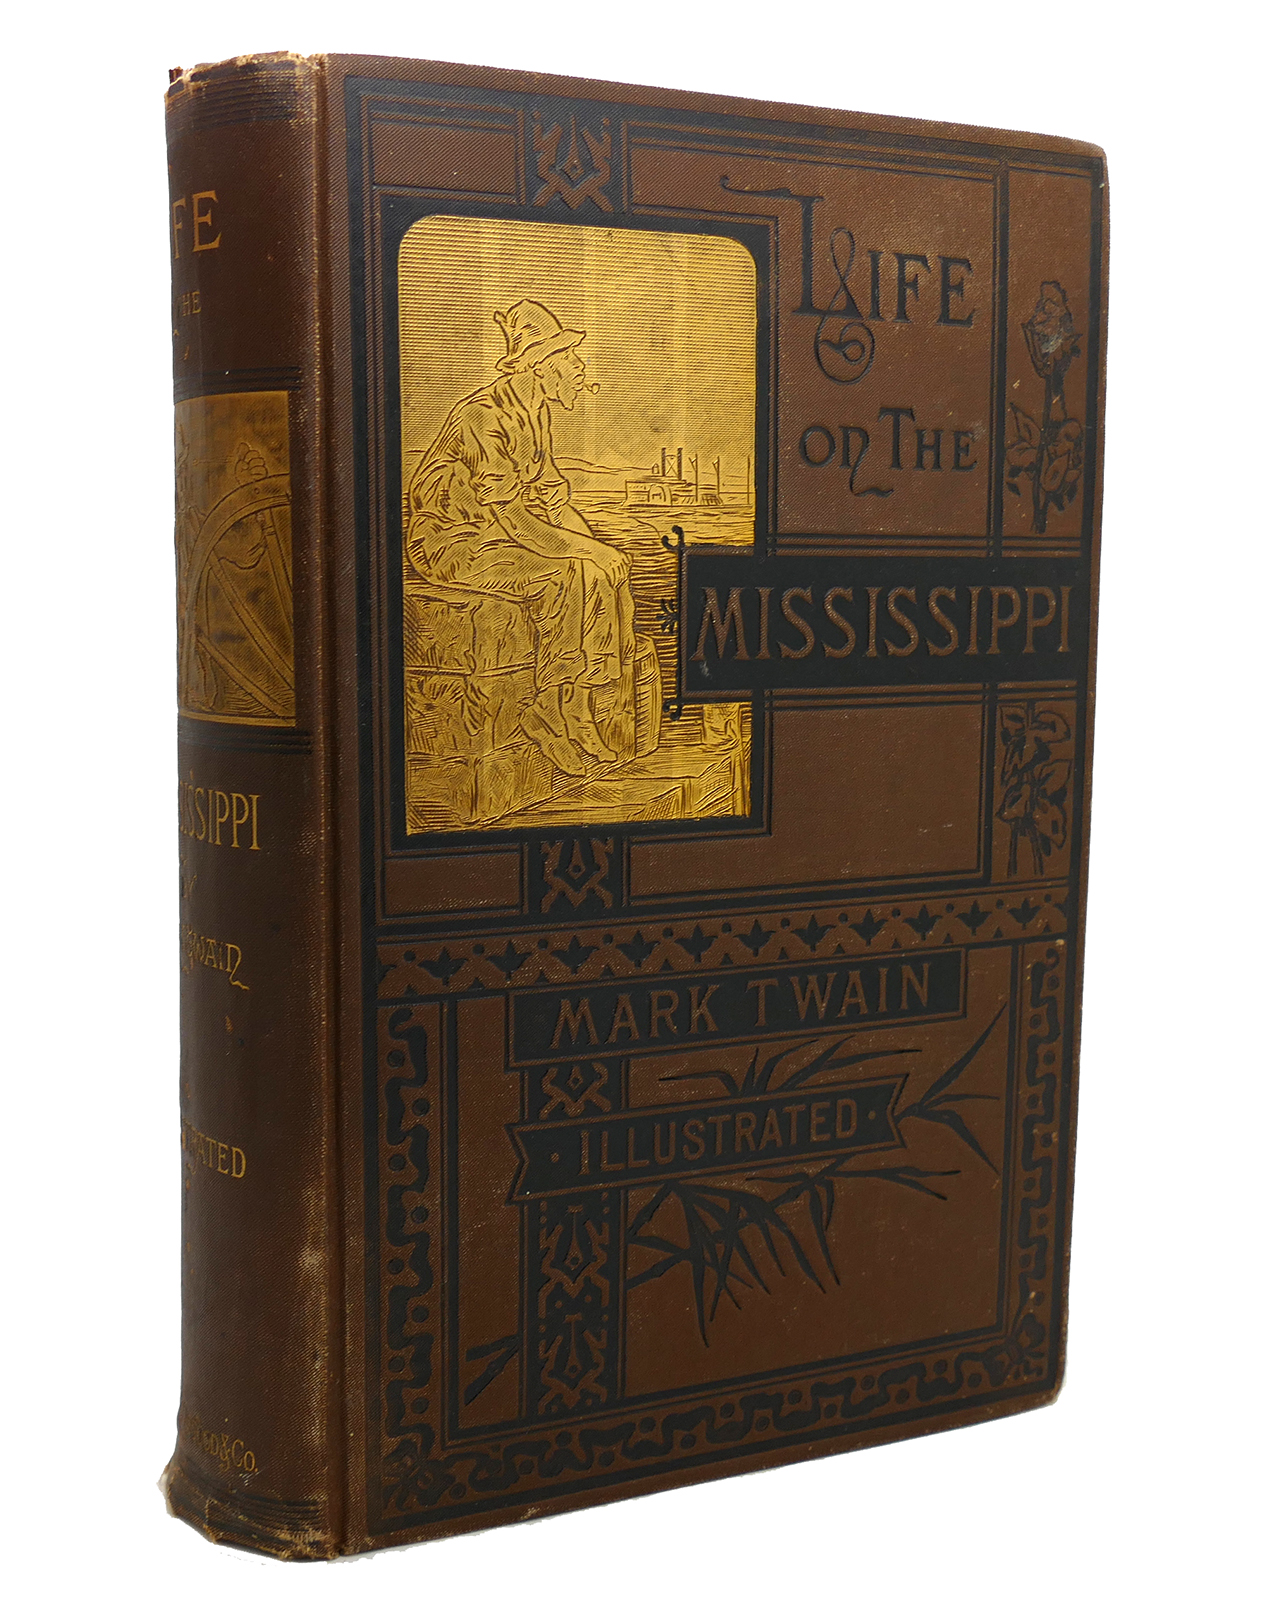 LIFE ON THE MISSISSIPPI 1st Issue